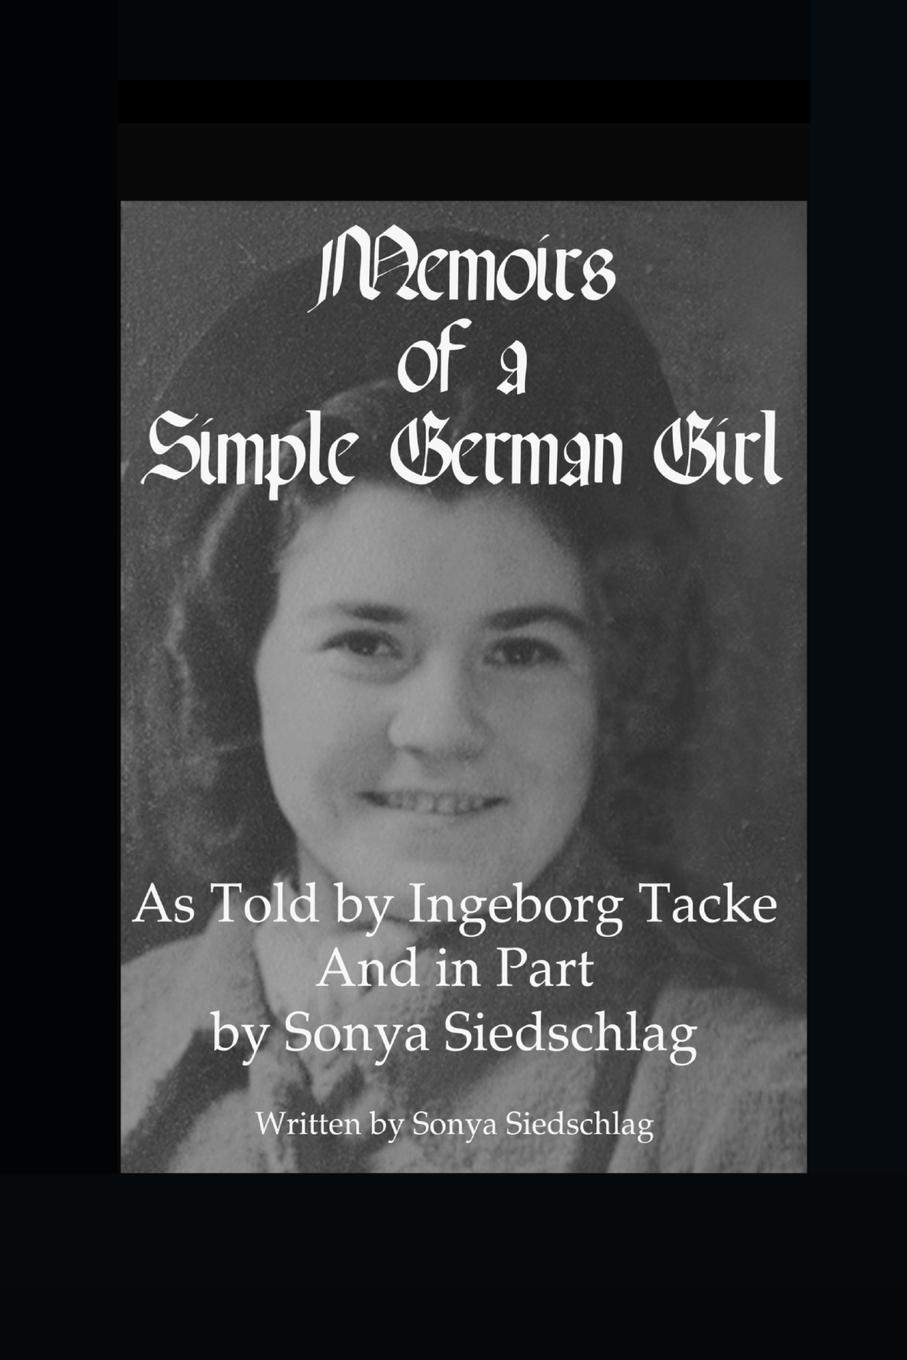 Sonya Siedschlag Memoirs of a Simple German Girl - Public